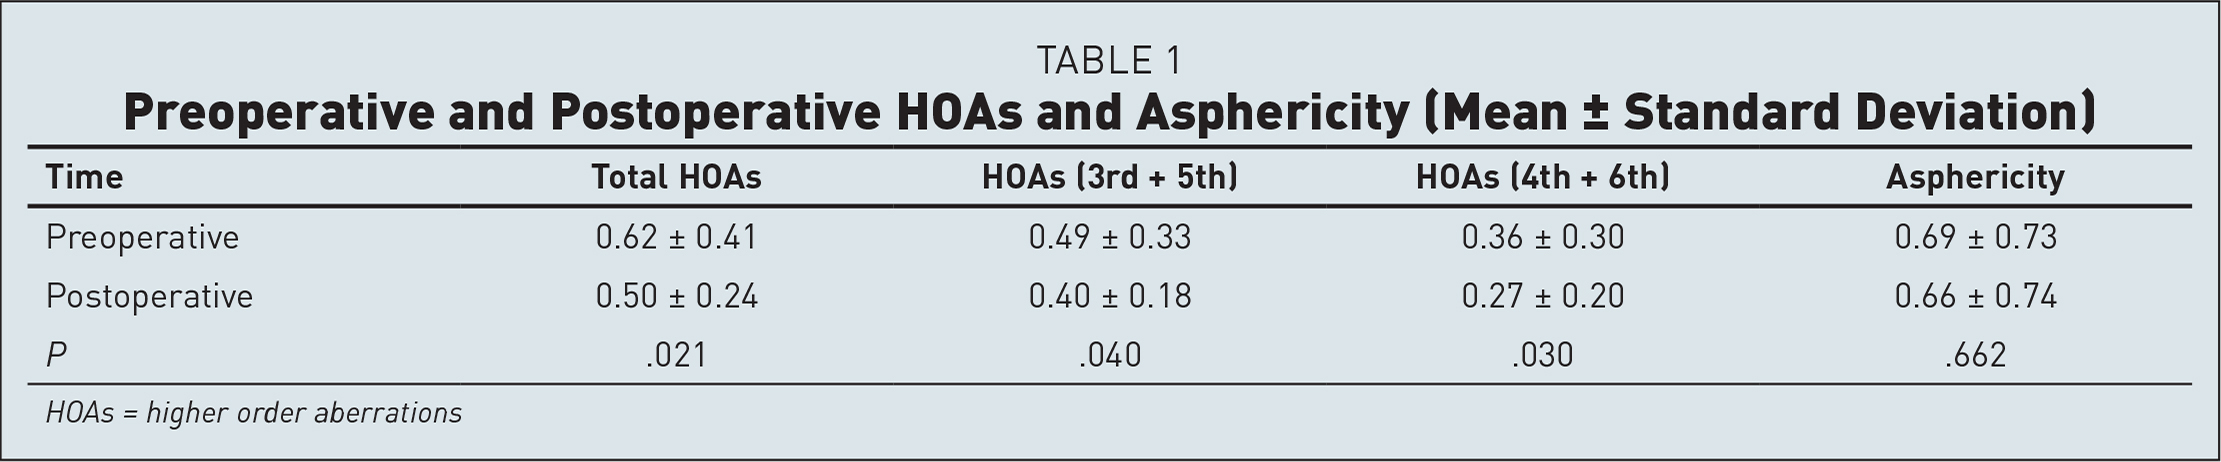 Preoperative and Postoperative HOAs and Asphericity (Mean ± Standard Deviation)